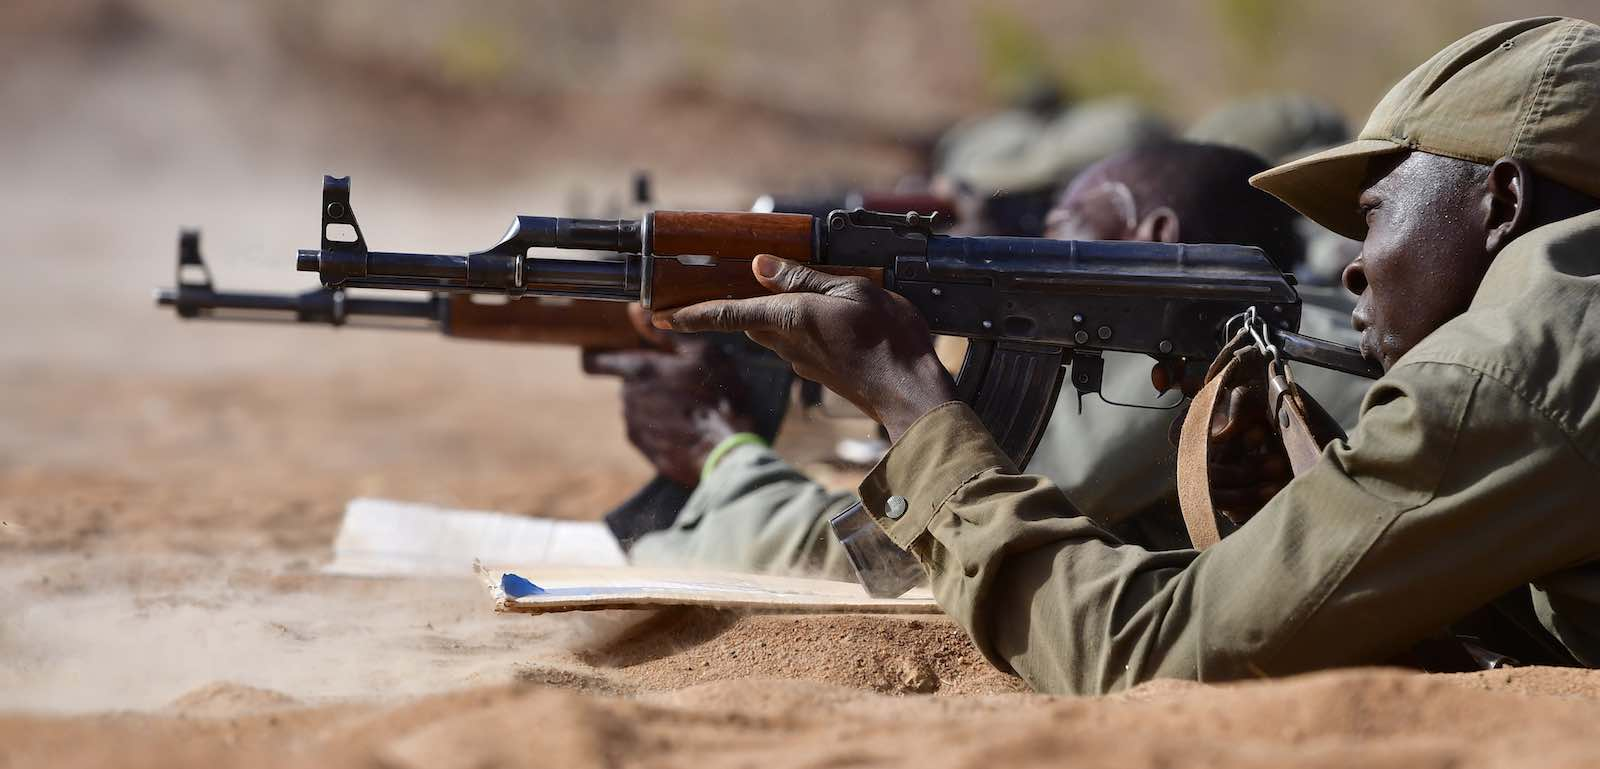 Troops in Mali training with AK-47 rifles (Photo: Alexander Koerner/Getty)